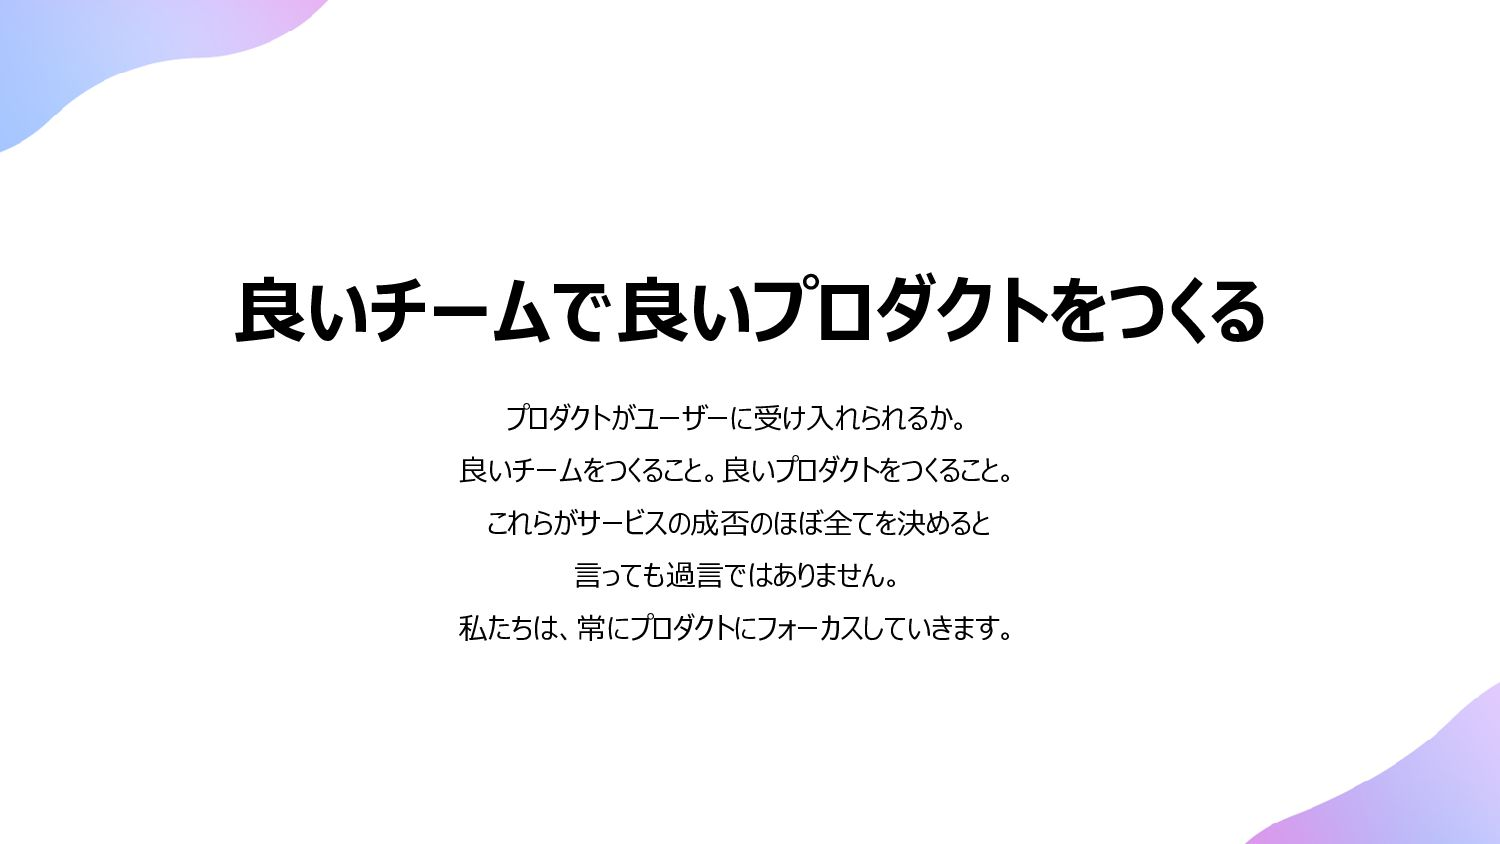 How we develop プロダクト開発スタイル